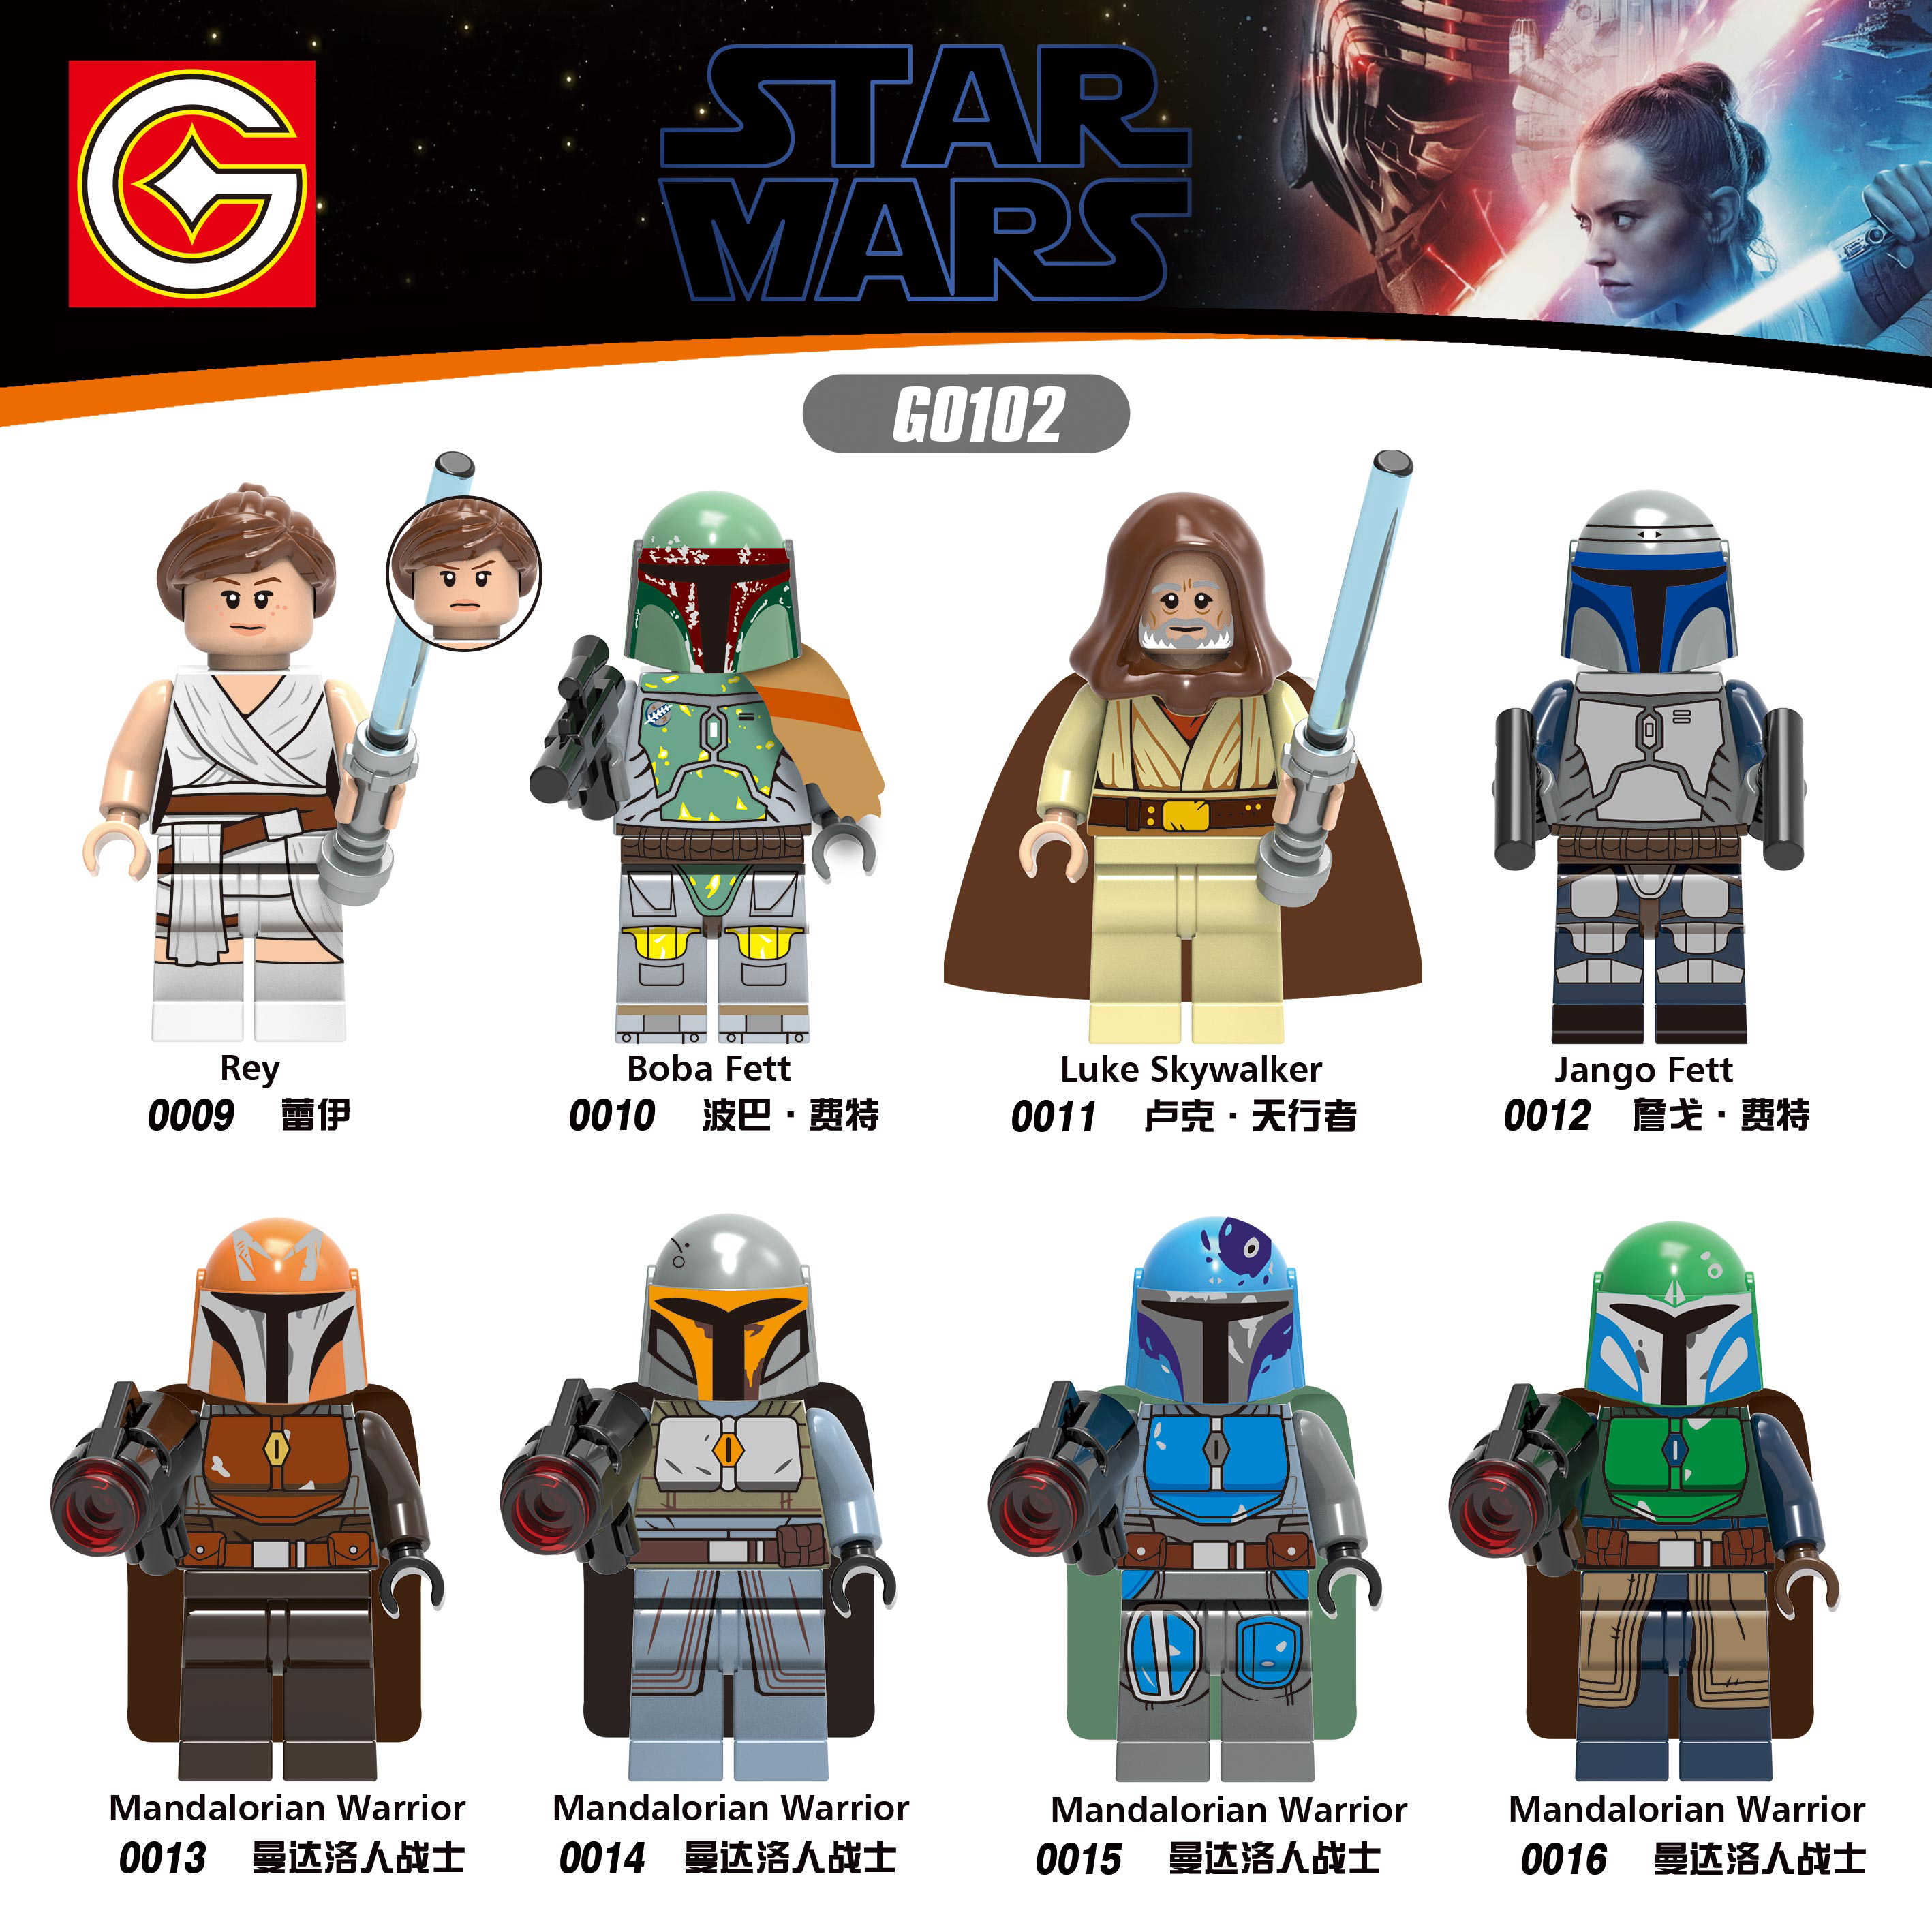 Legoed naves Star Rise of Skywalker Wars 9 Mandalorian Warrior Sit minifigure Kylo Rened Starwars klocki figurki